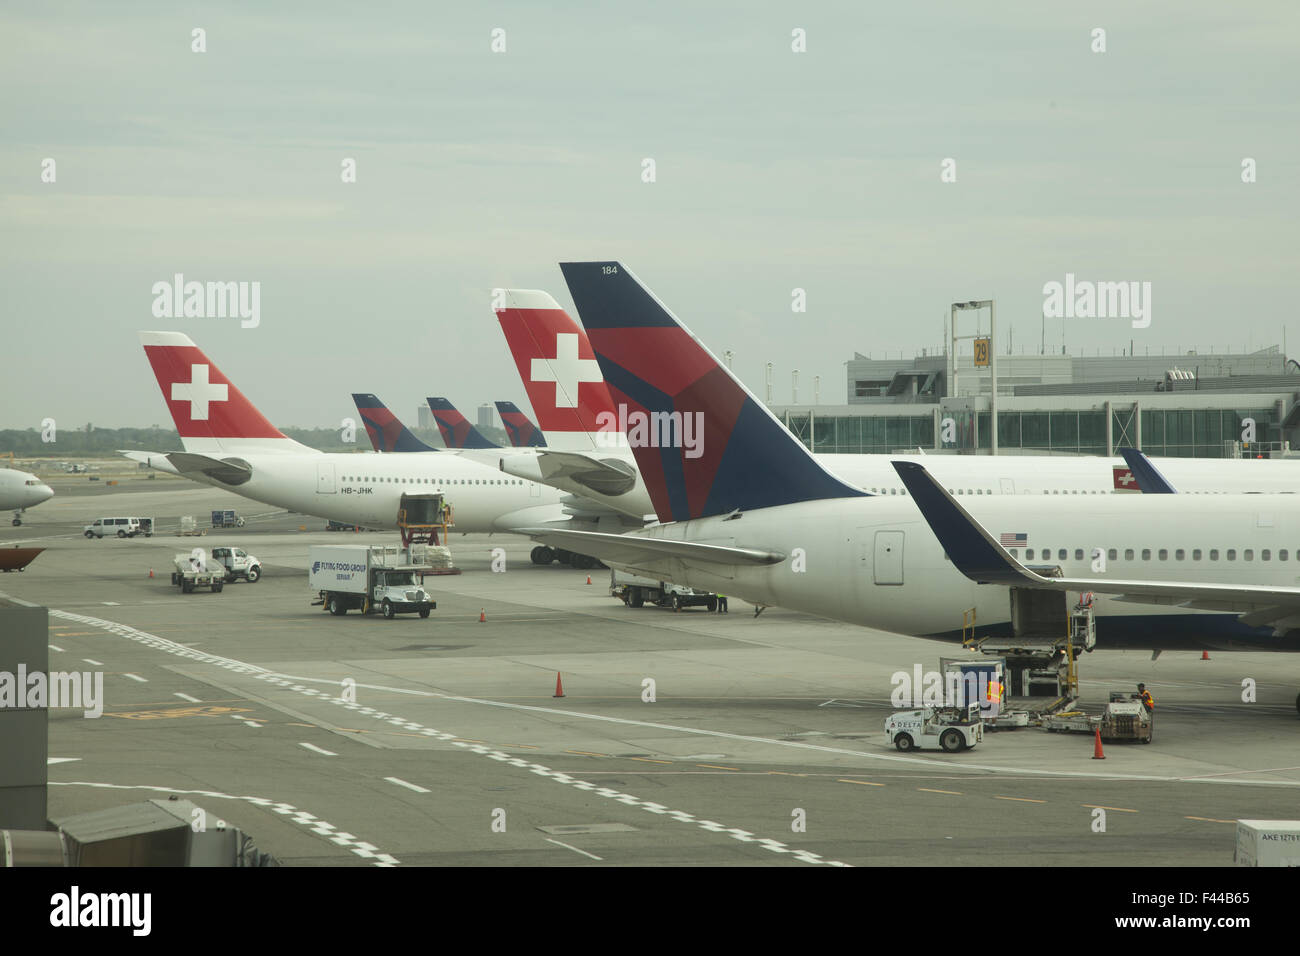 Swiss International Airlines airplanes on the tarmac at JFK International Airport in New York City. - Stock Image